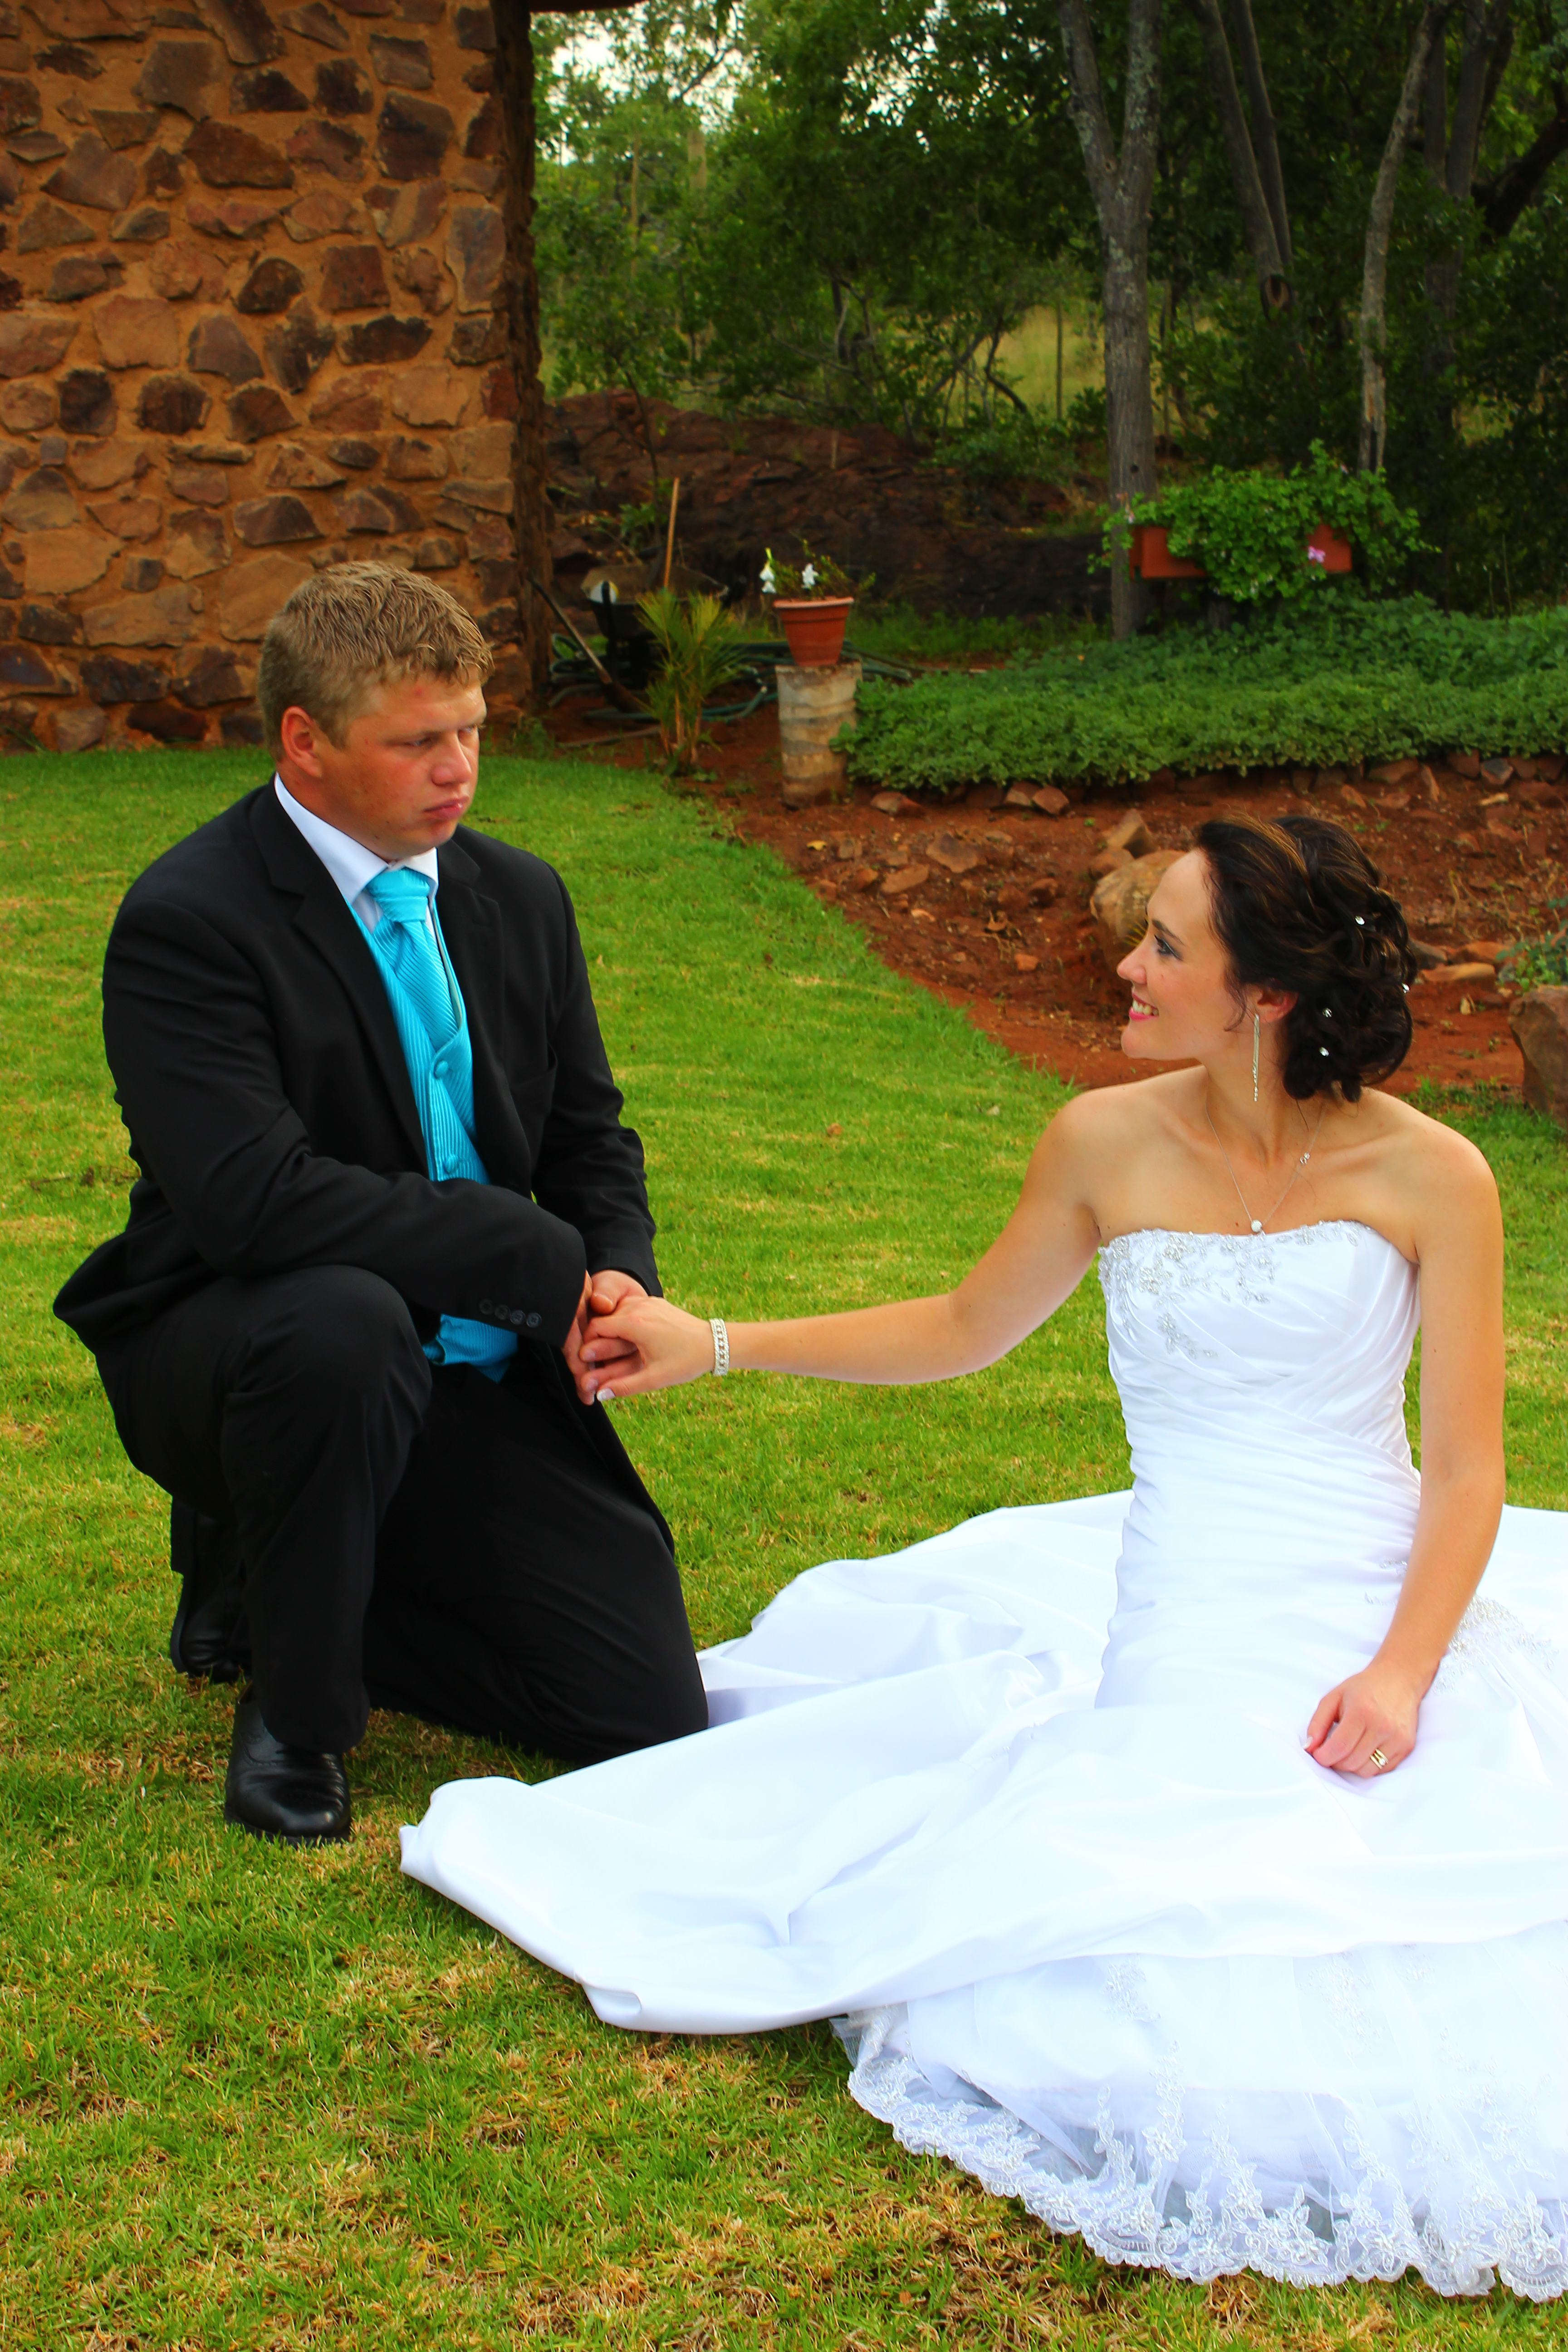 Limpopo Wedding Photography | Photoshoots Pretoria